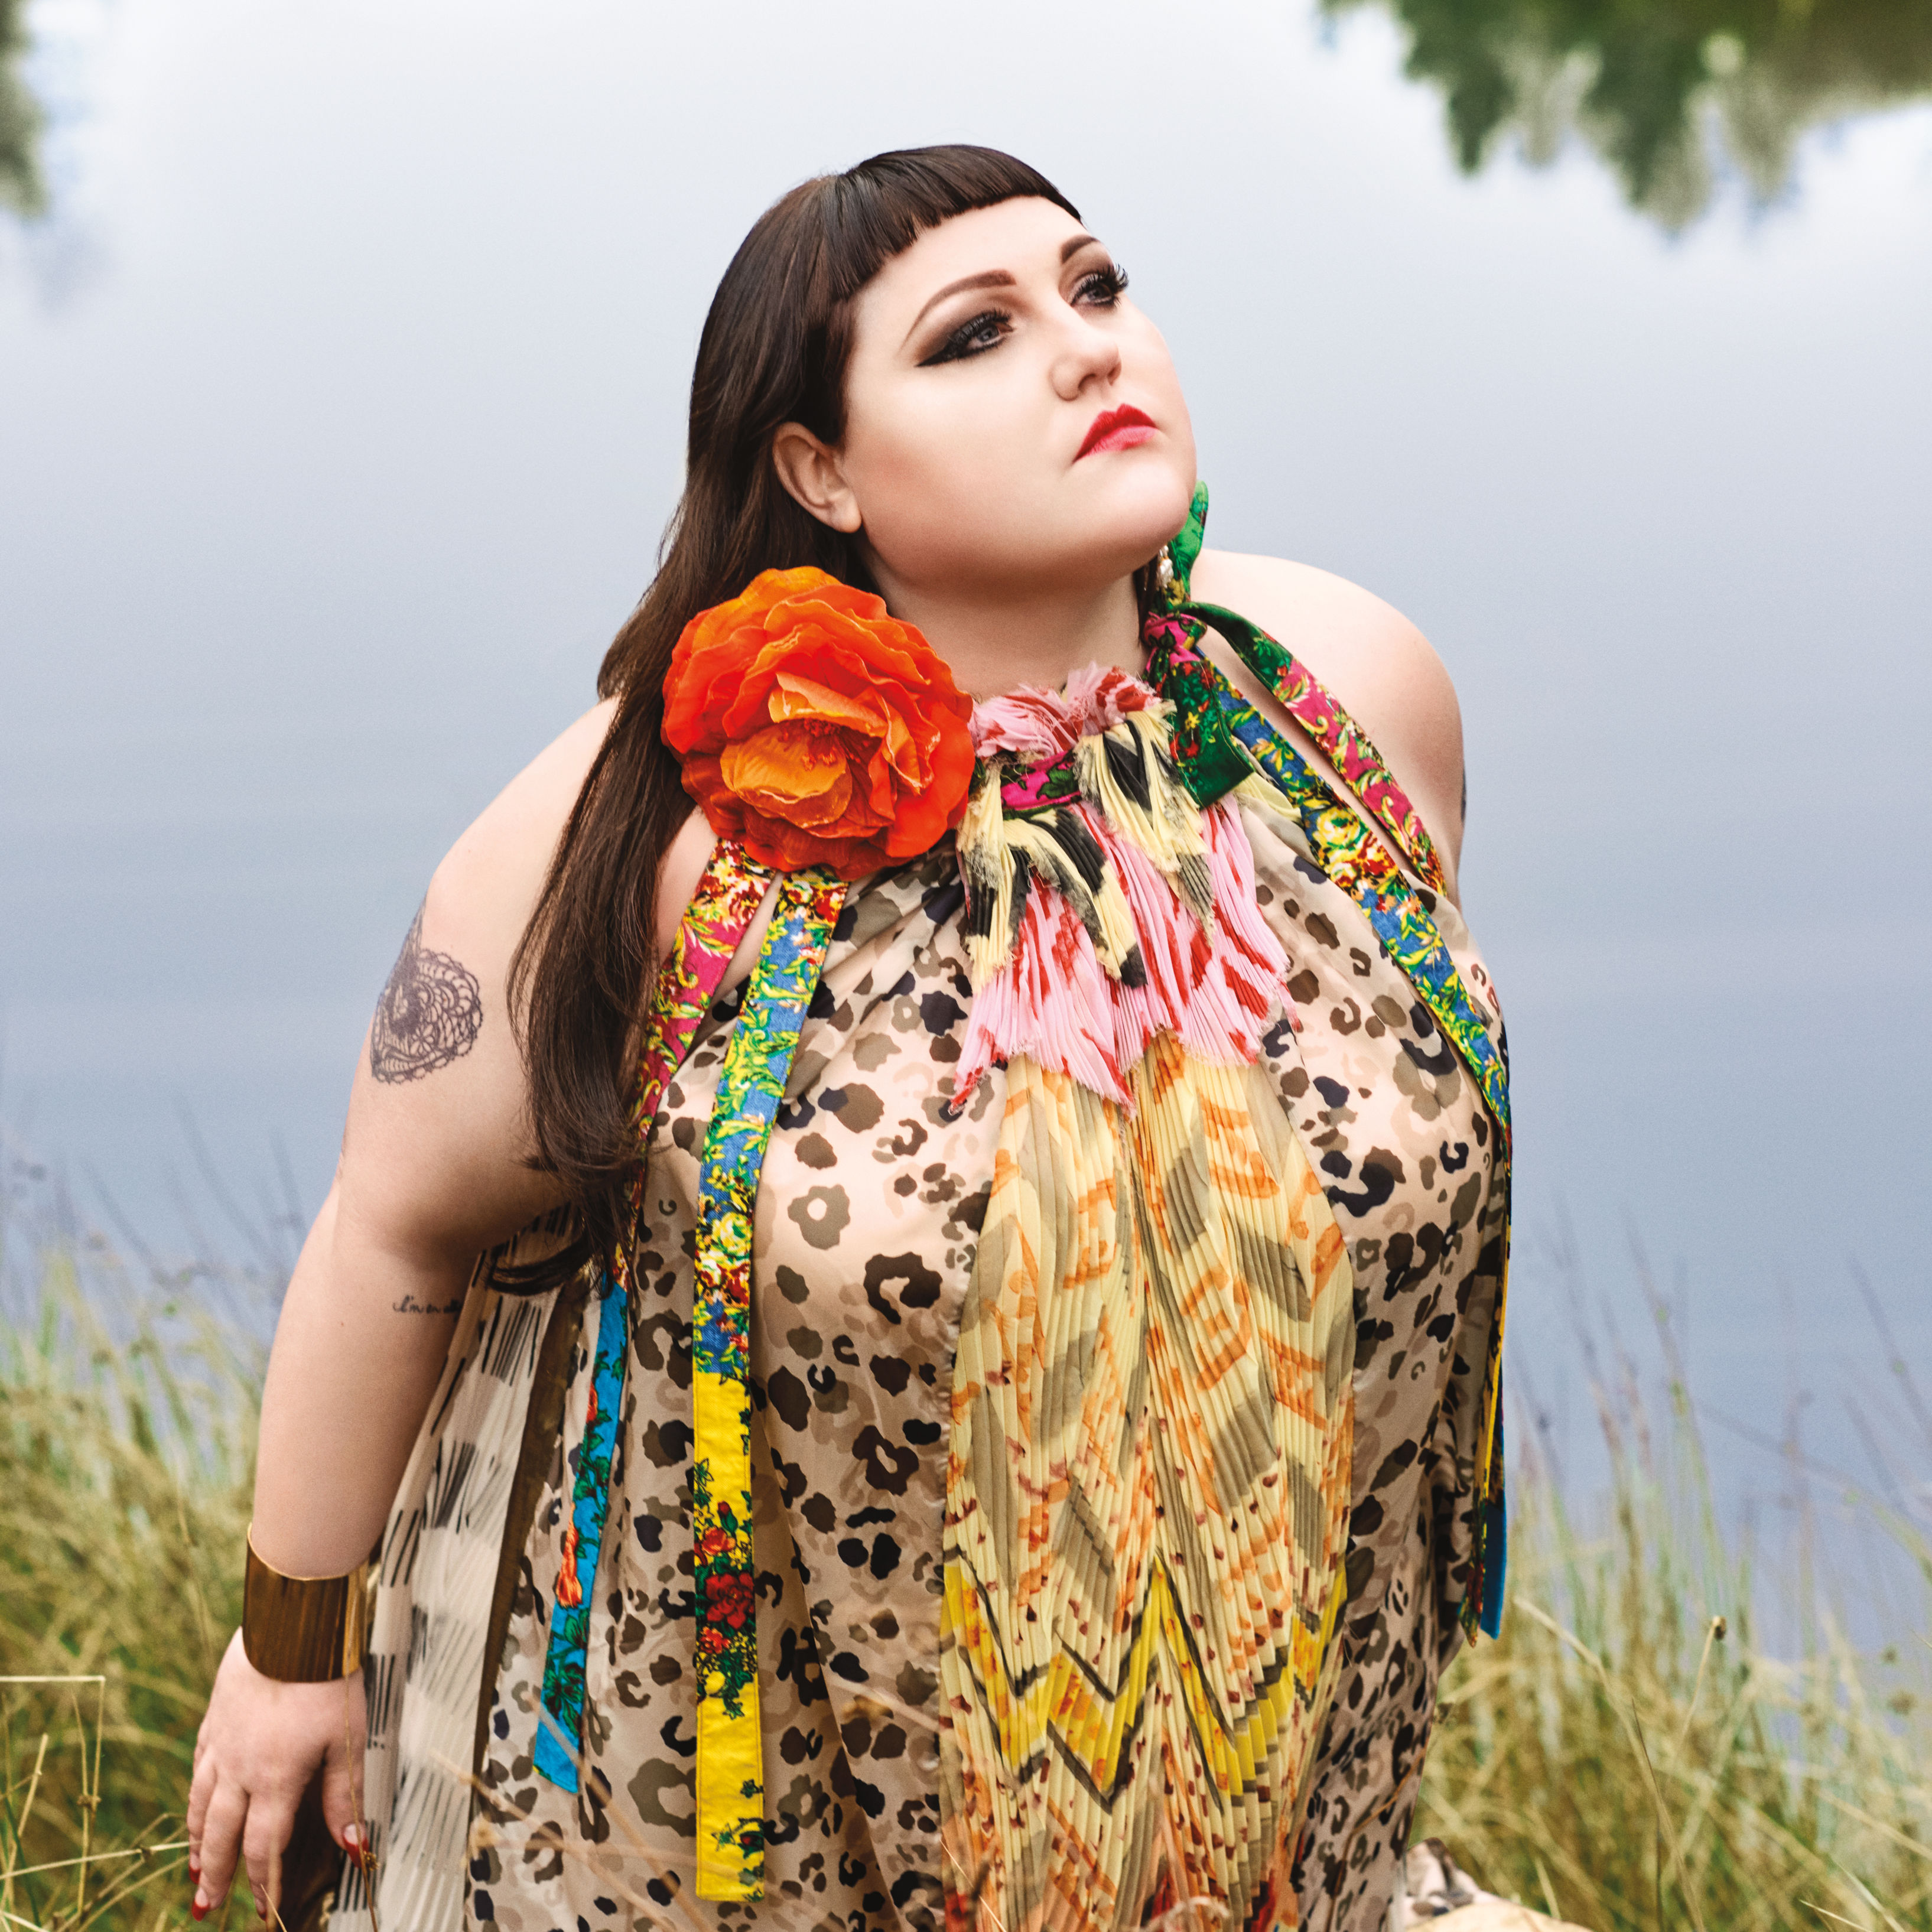 0617 arts essentials beth ditto o4fcq6